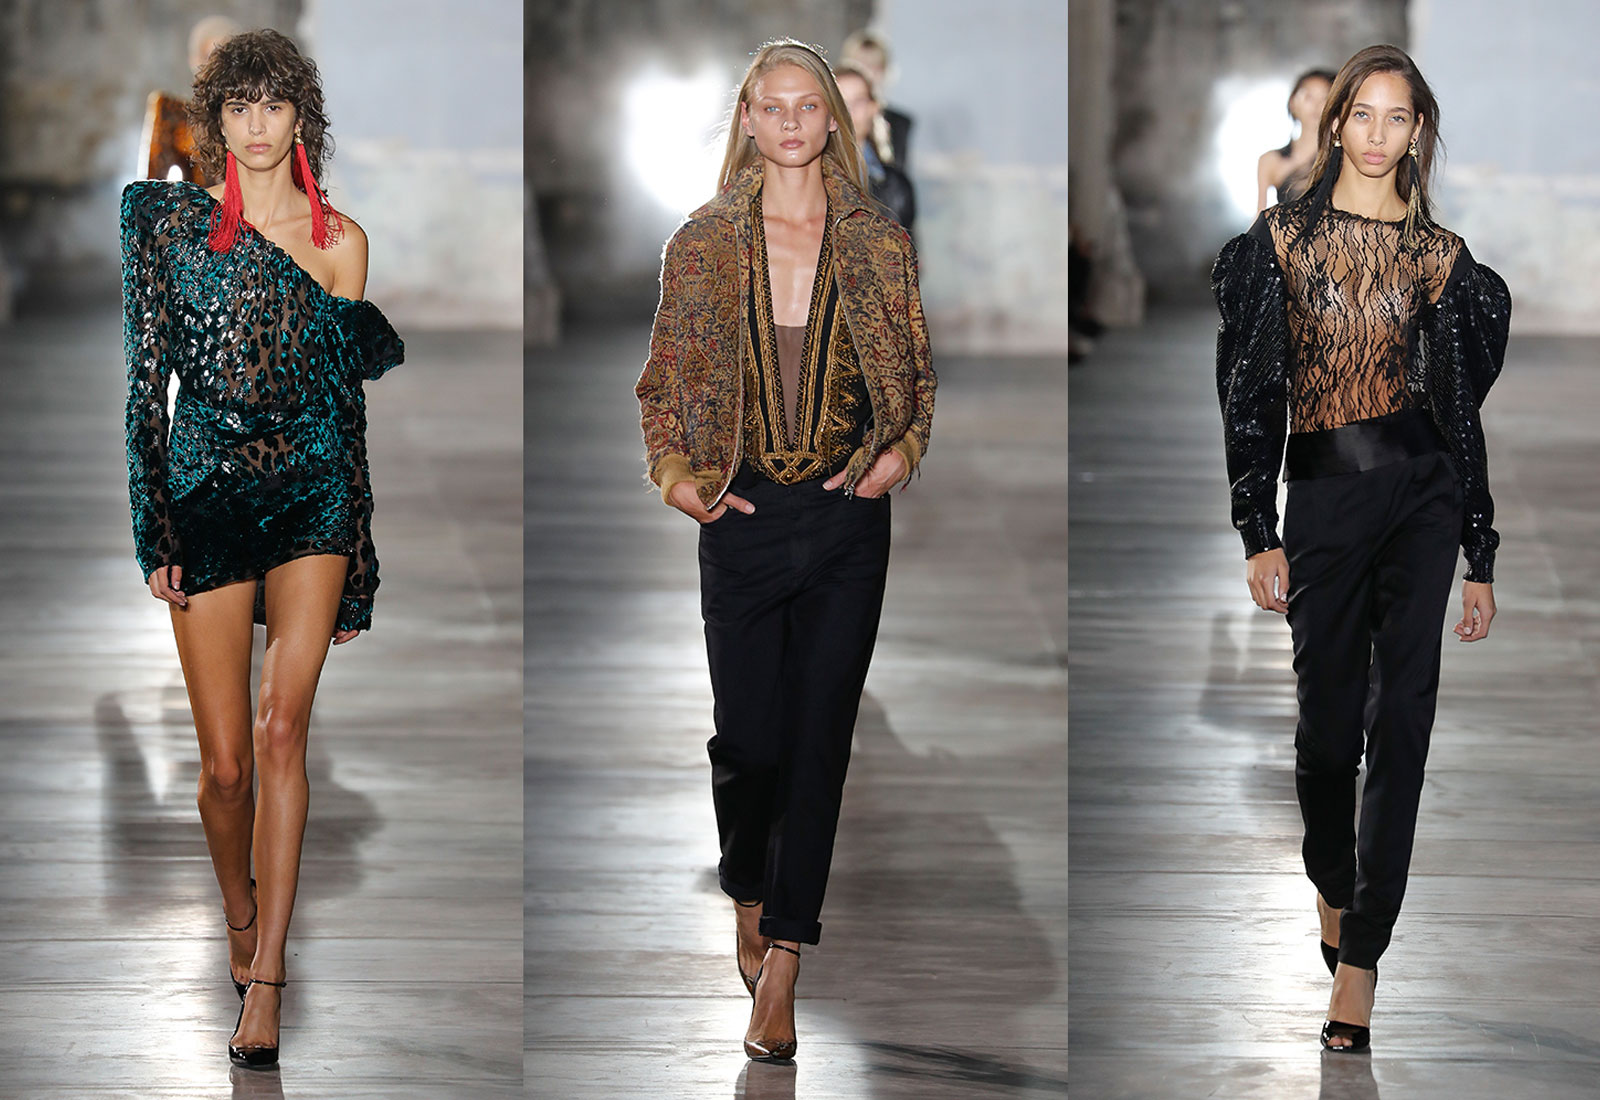 anthony vaccarello ysl saint laurent fashion designer new ss17 collection runway looks 1600 x 1100